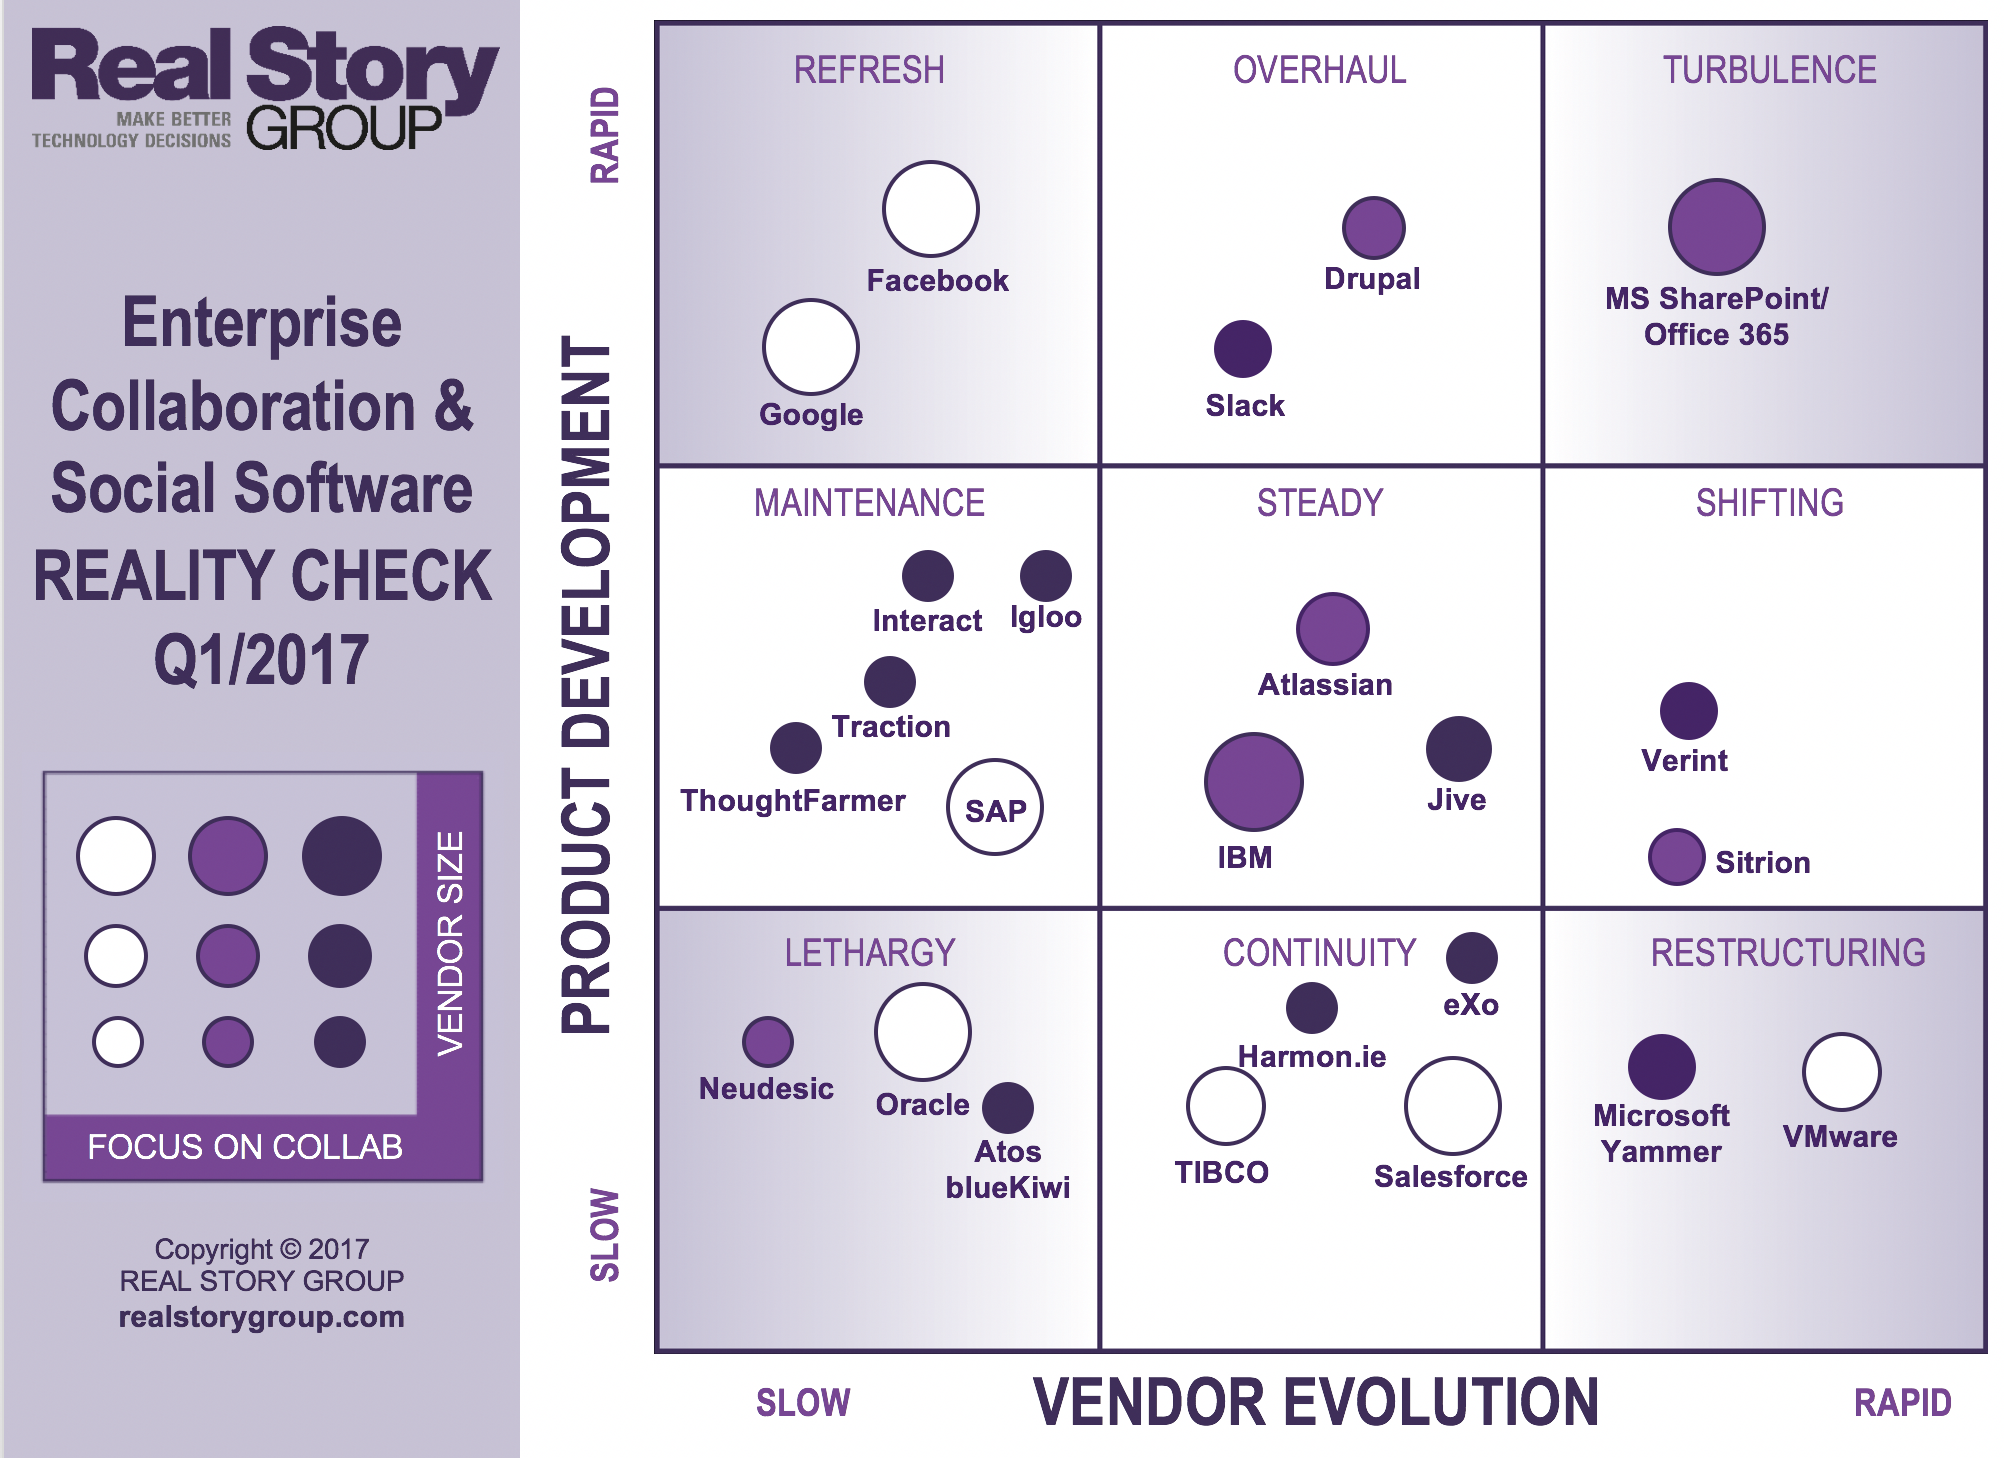 RSG 2017 Enterprise Collaboration and Social Software Marketplace Analysis and Reality Check